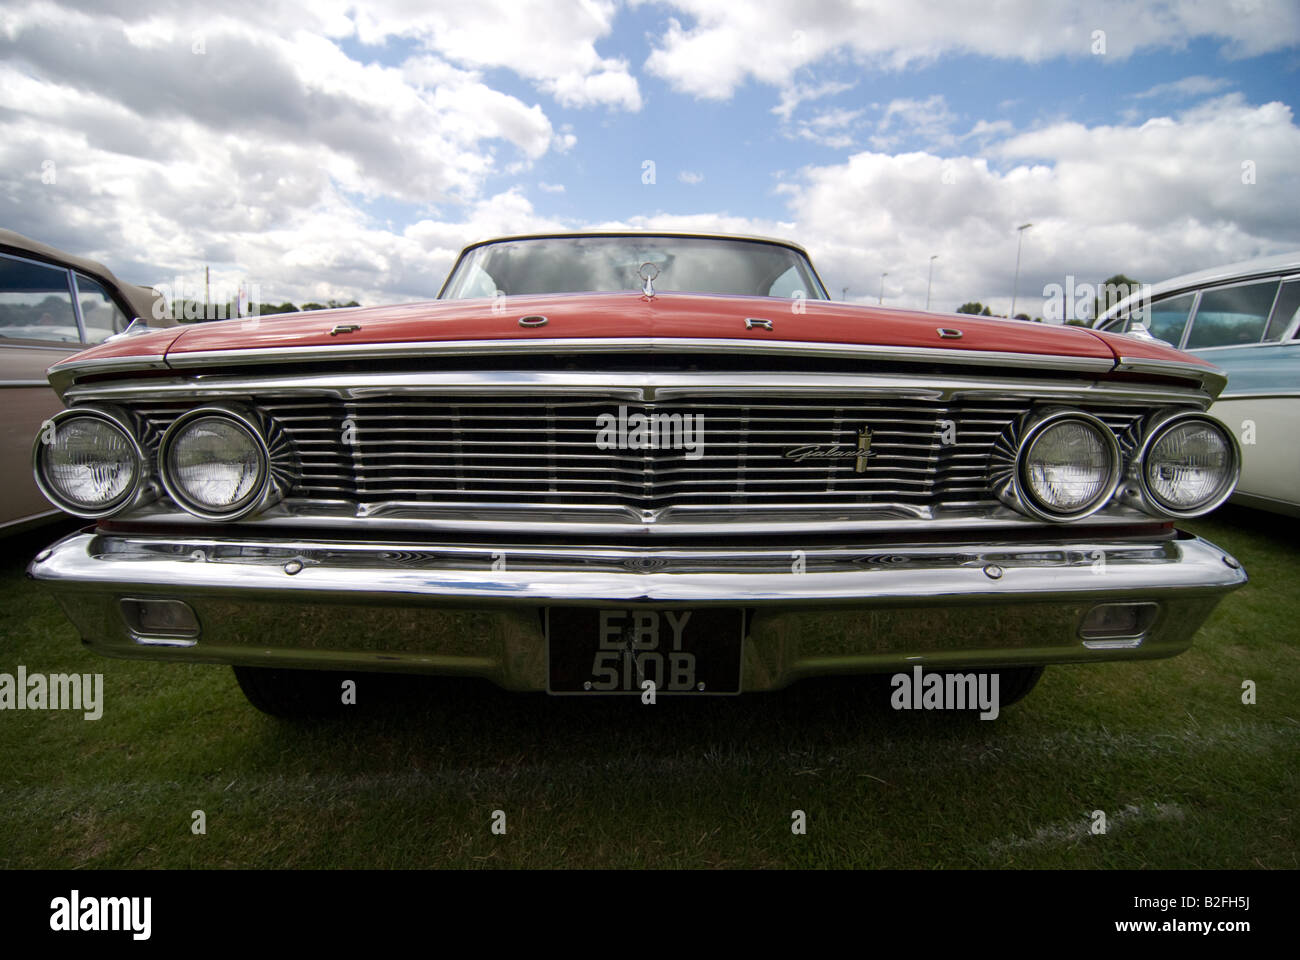 Ford Galaxie Stock Photos & Ford Galaxie Stock Images